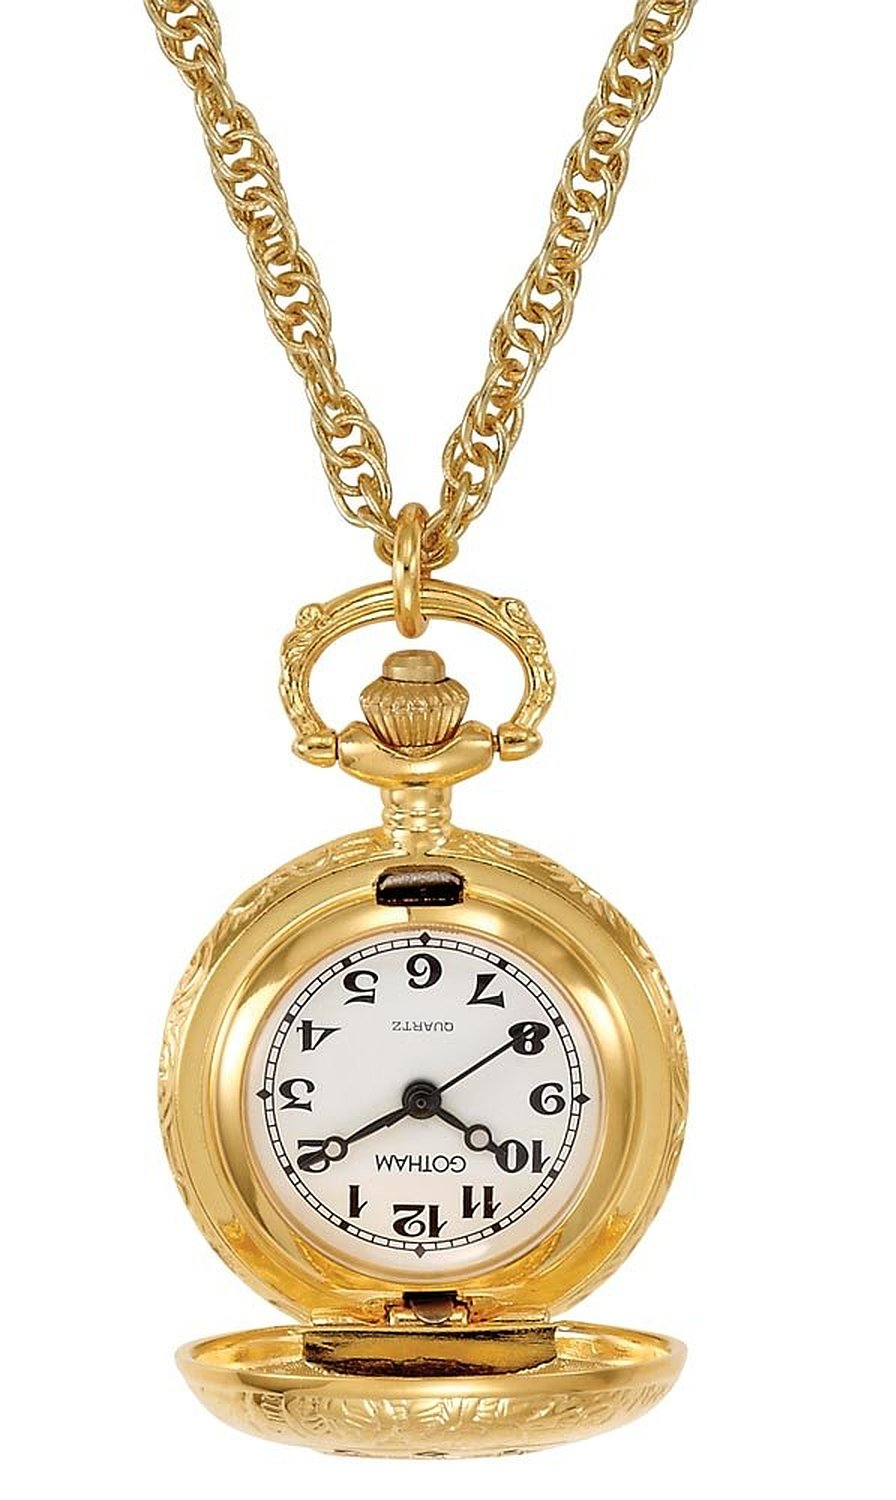 Amazon.com: Gotham Women's Antique Design Gold-Tone Quartz Fashion Pendant Watch # GWC14118G: Watches